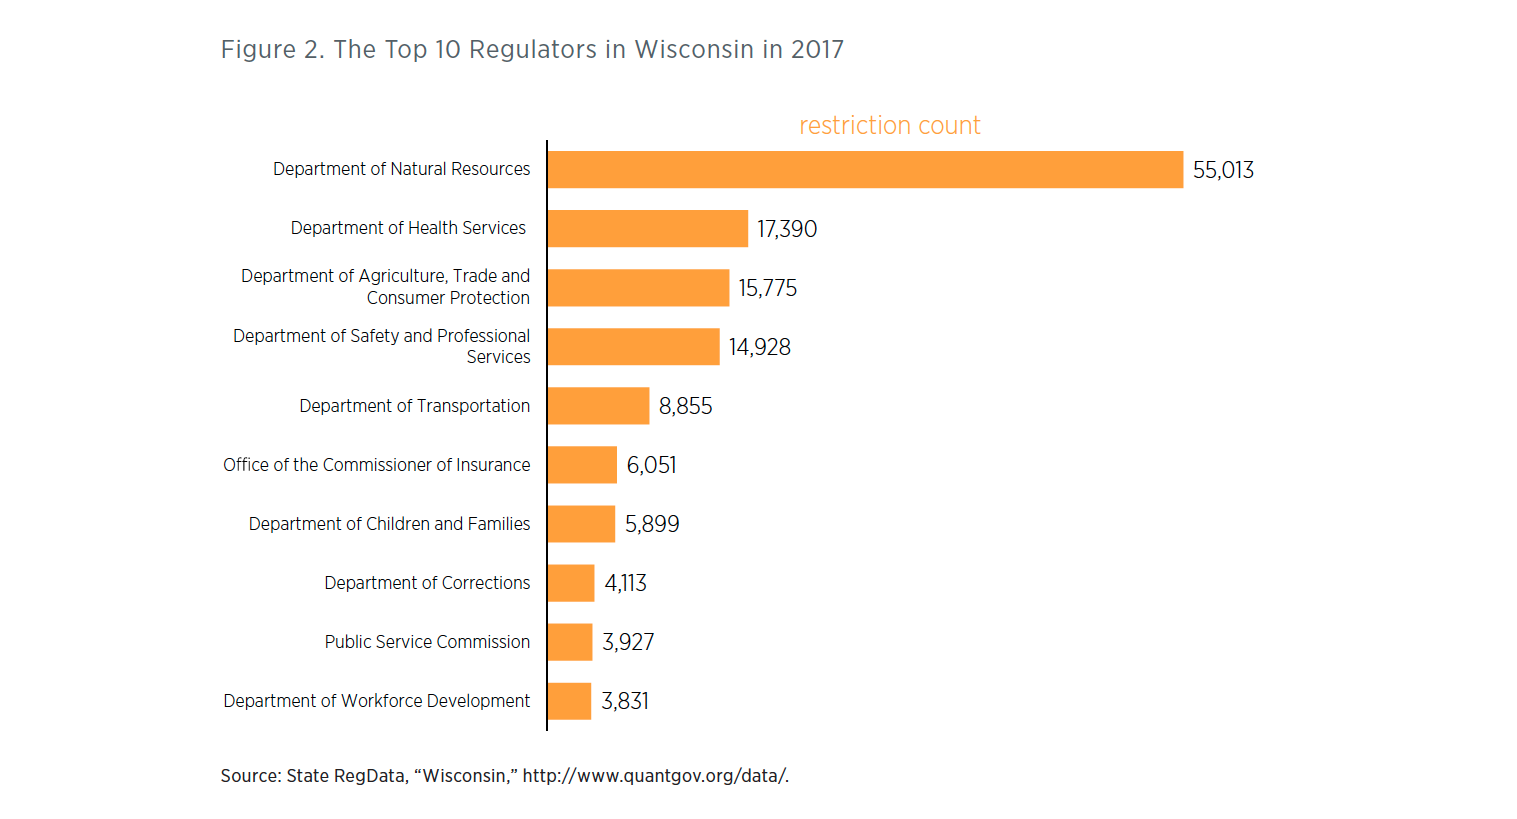 Wisconsin Regulations